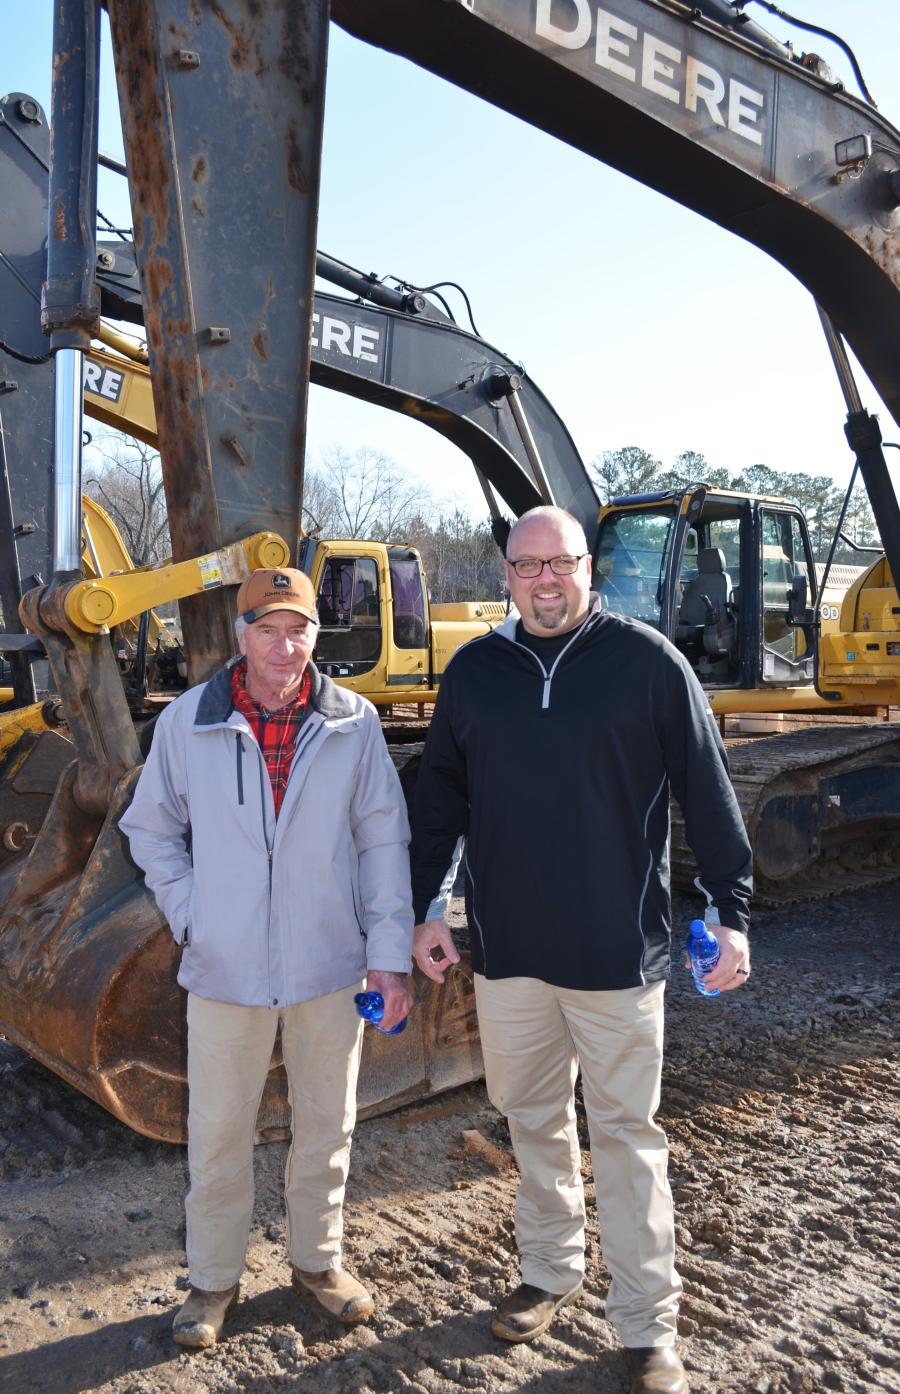 Looking over a pair of Deere excavators in the sale are Scott Bowden (L) of Crawford Grading & Pipeline, Luthersville, Ga., and Jason Solesbee of the local Georgia John Deere dealership, Flint Equipment Company.